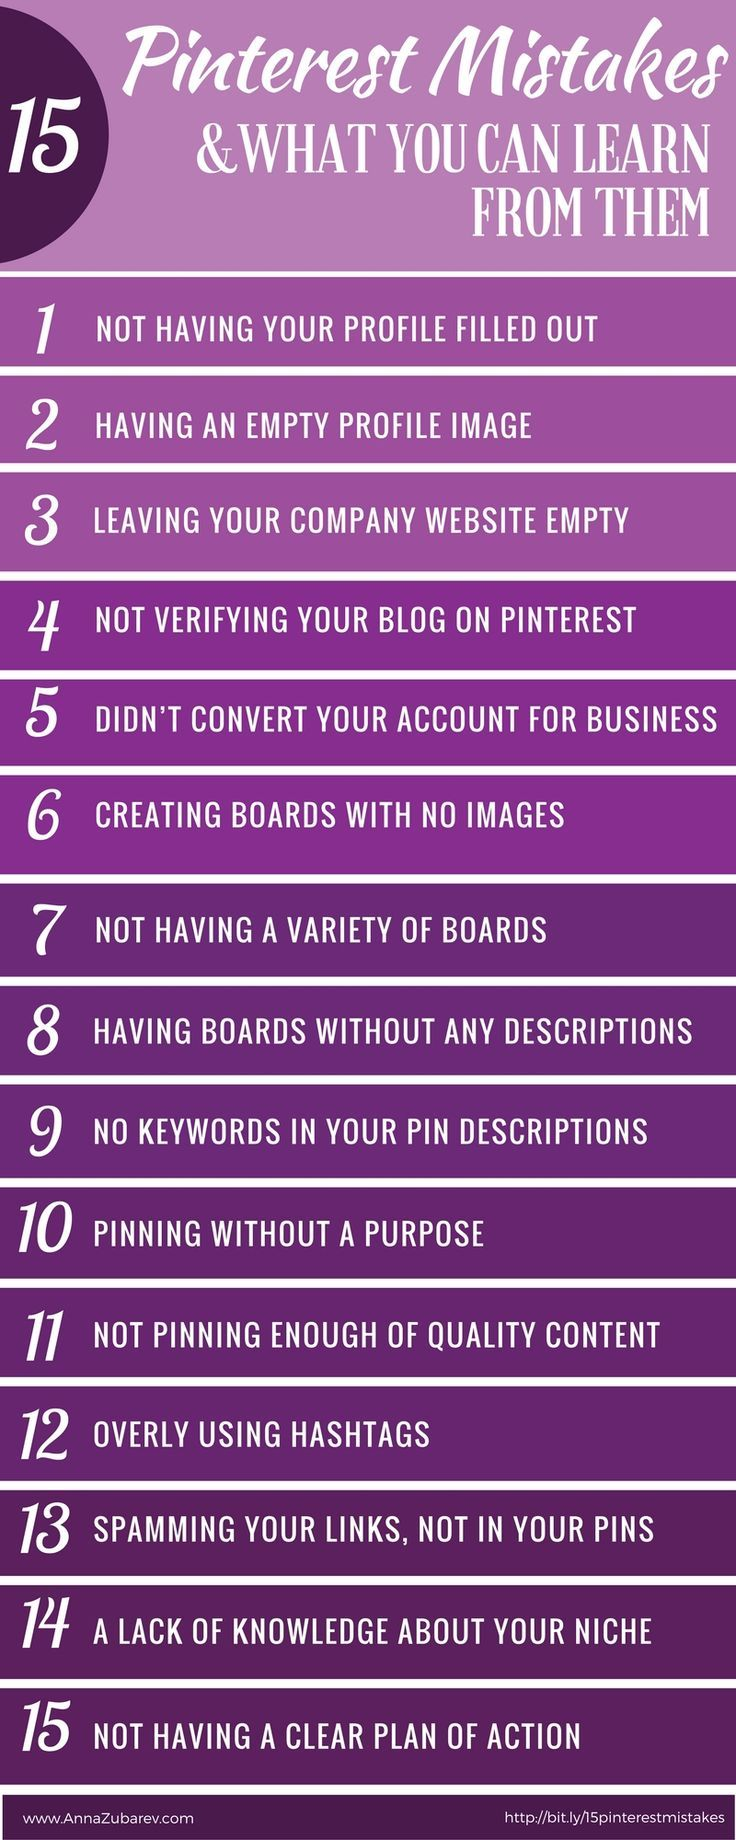 15 Pinterest Mistakes and What You Can Learn From Them via /annazubarev/ via /https/://www.pinterest.com/annazubarev/